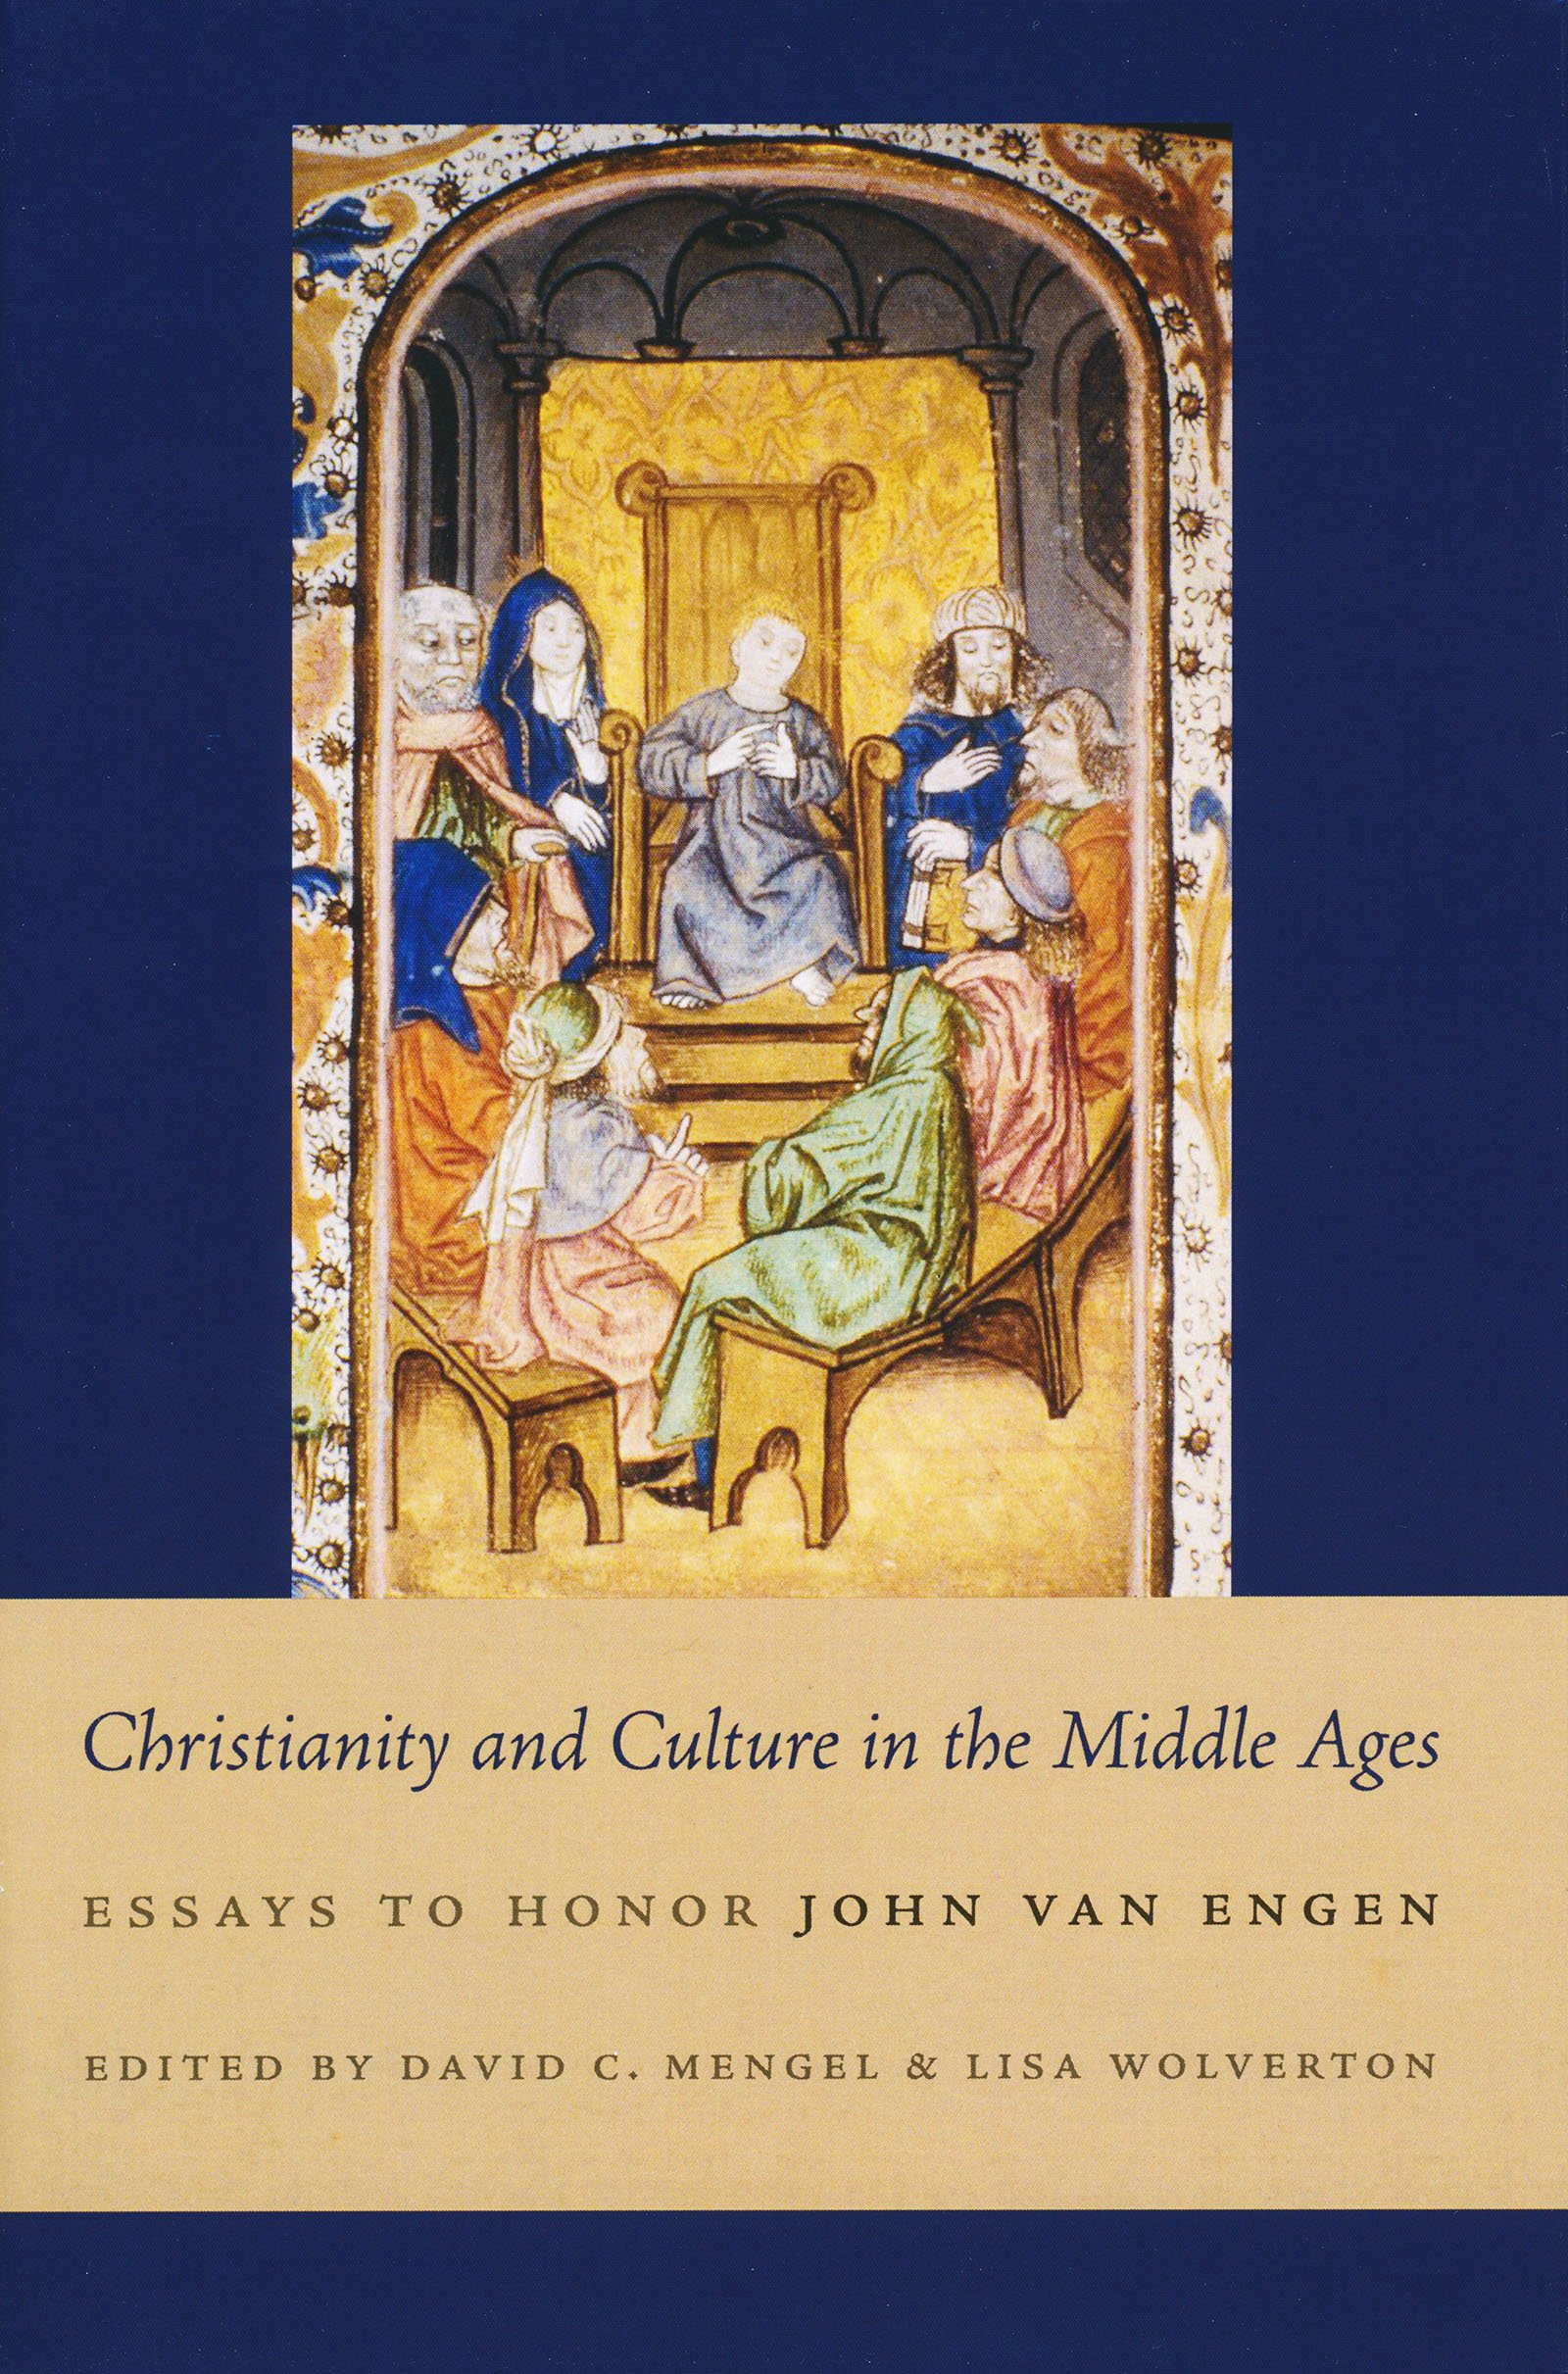 Christianity and culture of middle ages